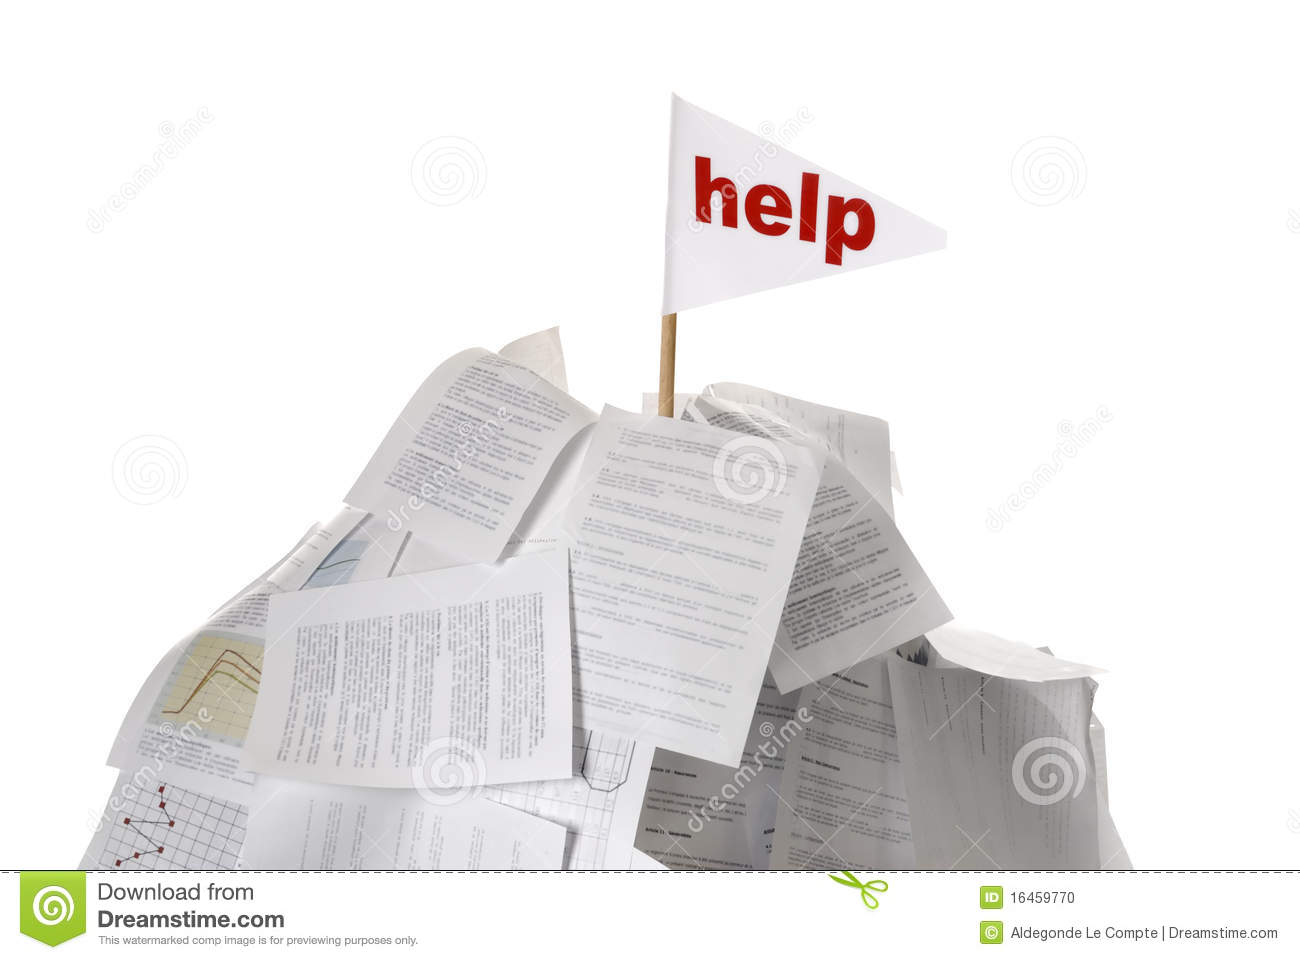 help papers com when you ask write my research paper our writing service is ready to help it is because m can offer the help papers best paper writing service